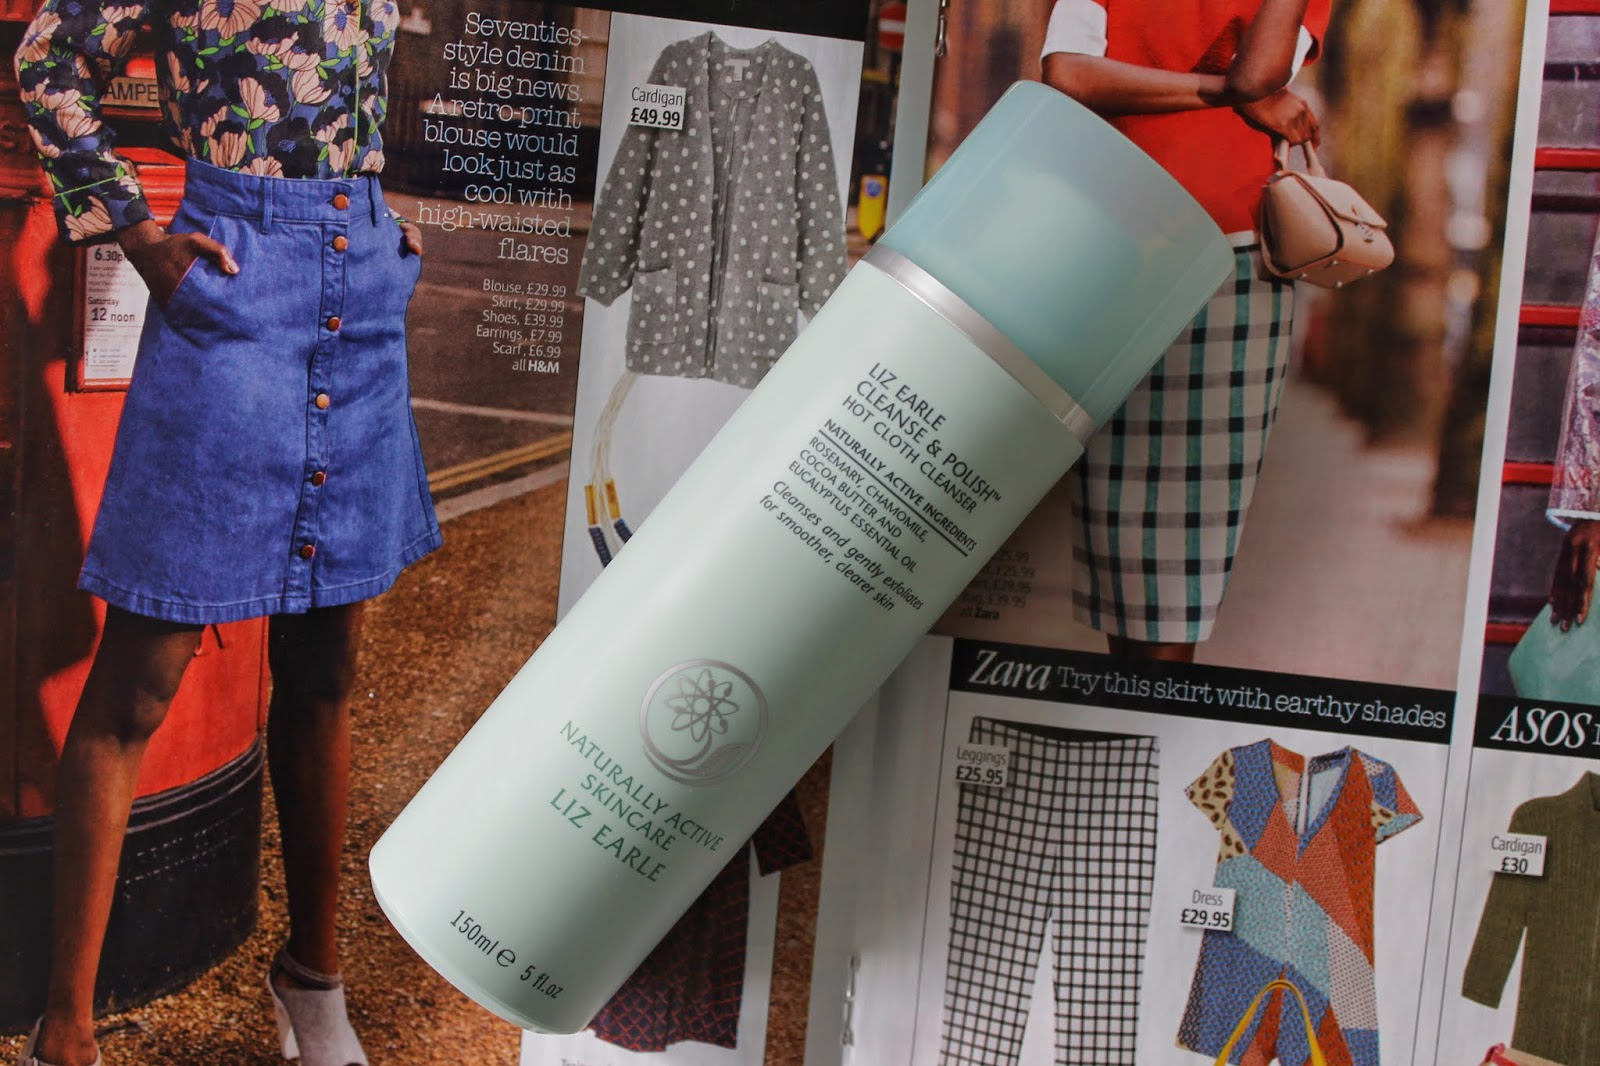 Review: Liz Earle Cleanse & Polish Hot Cloth Cleanser